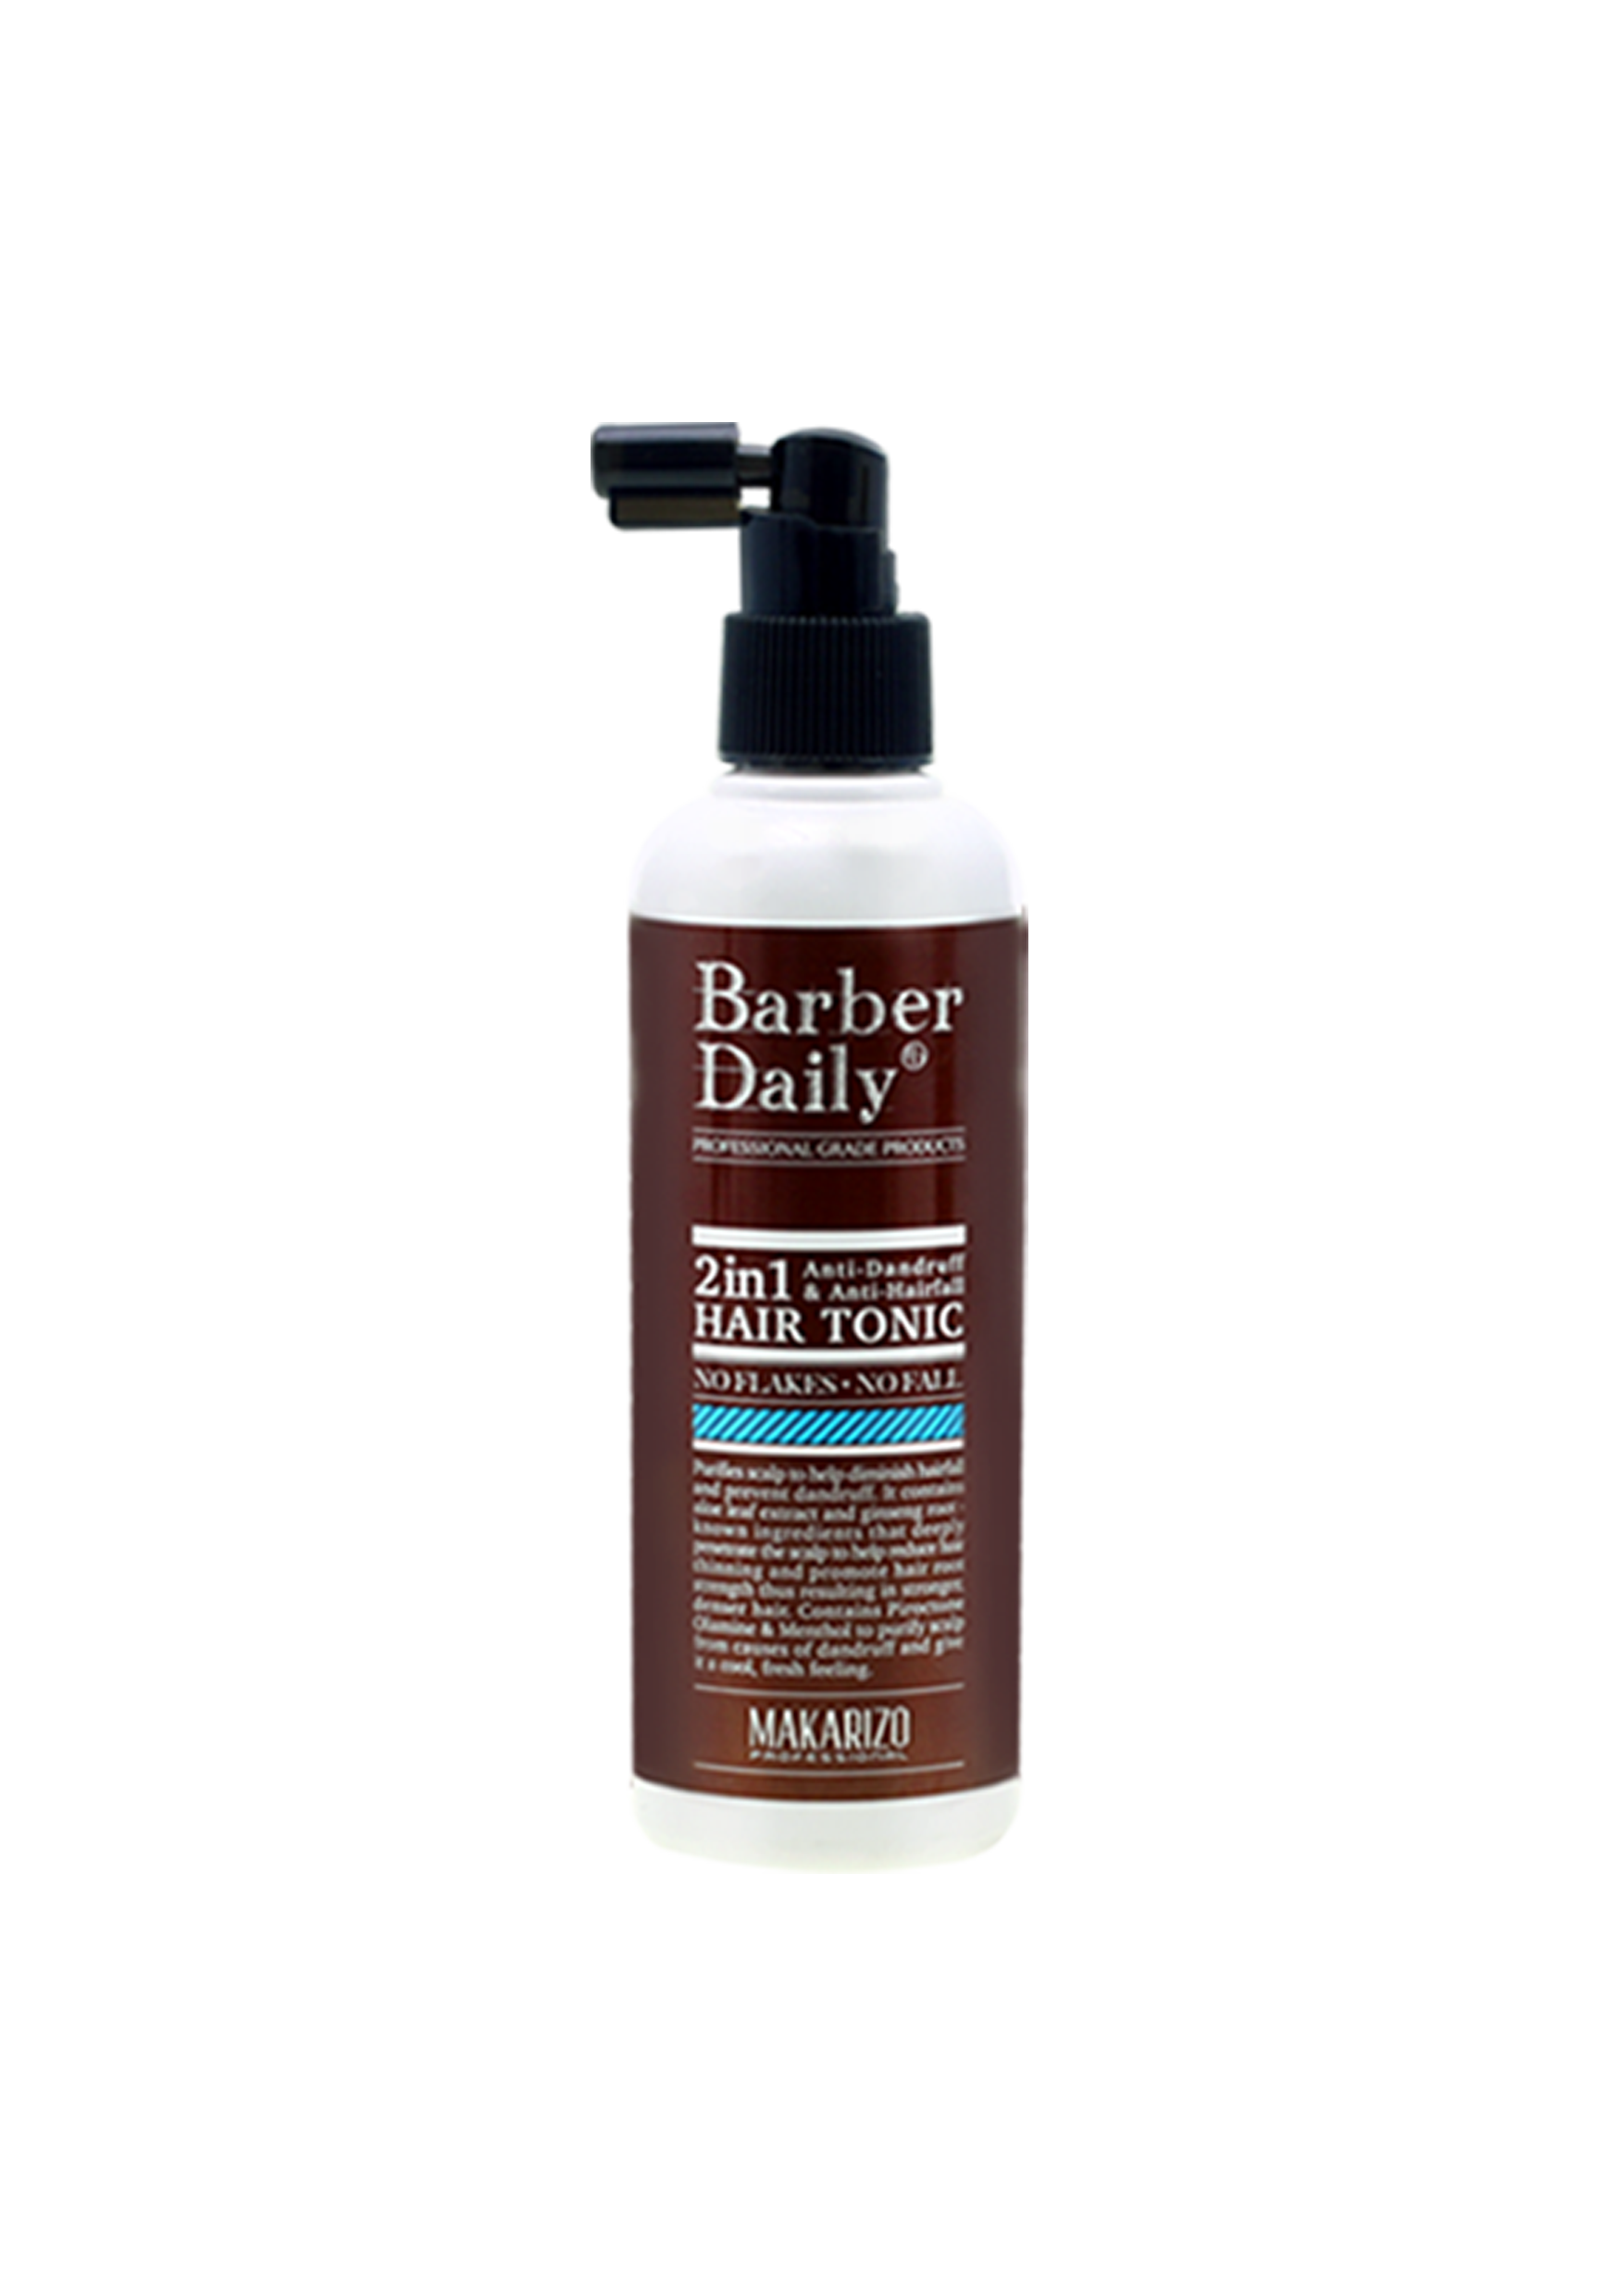 Barber Daily 2 in 1 Hair Tonic 240 ml